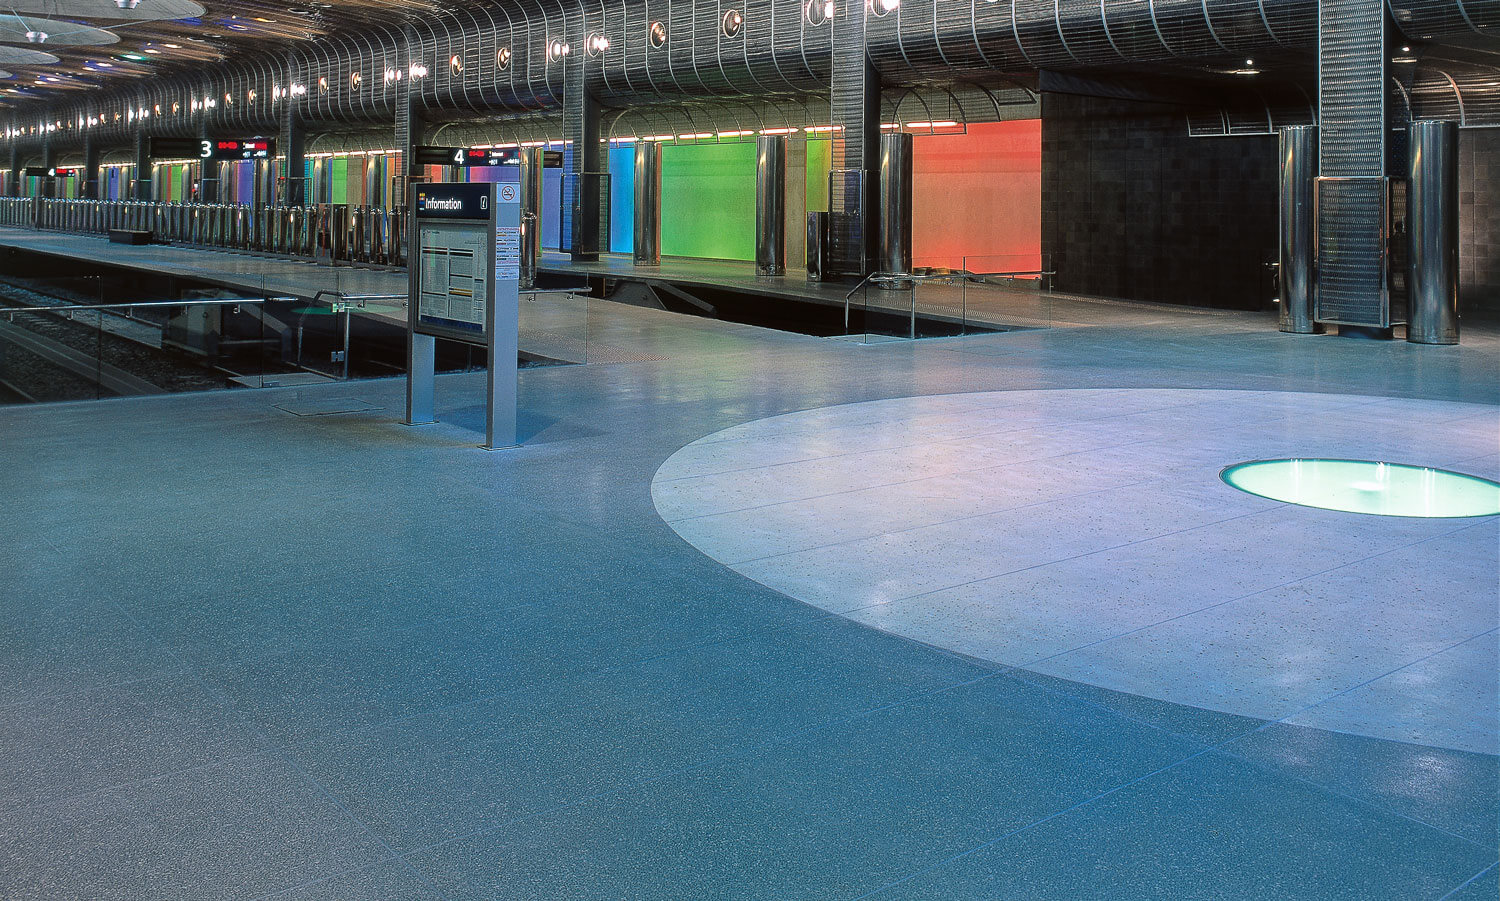 c2 commercial polished concrete floor in Britomart train station